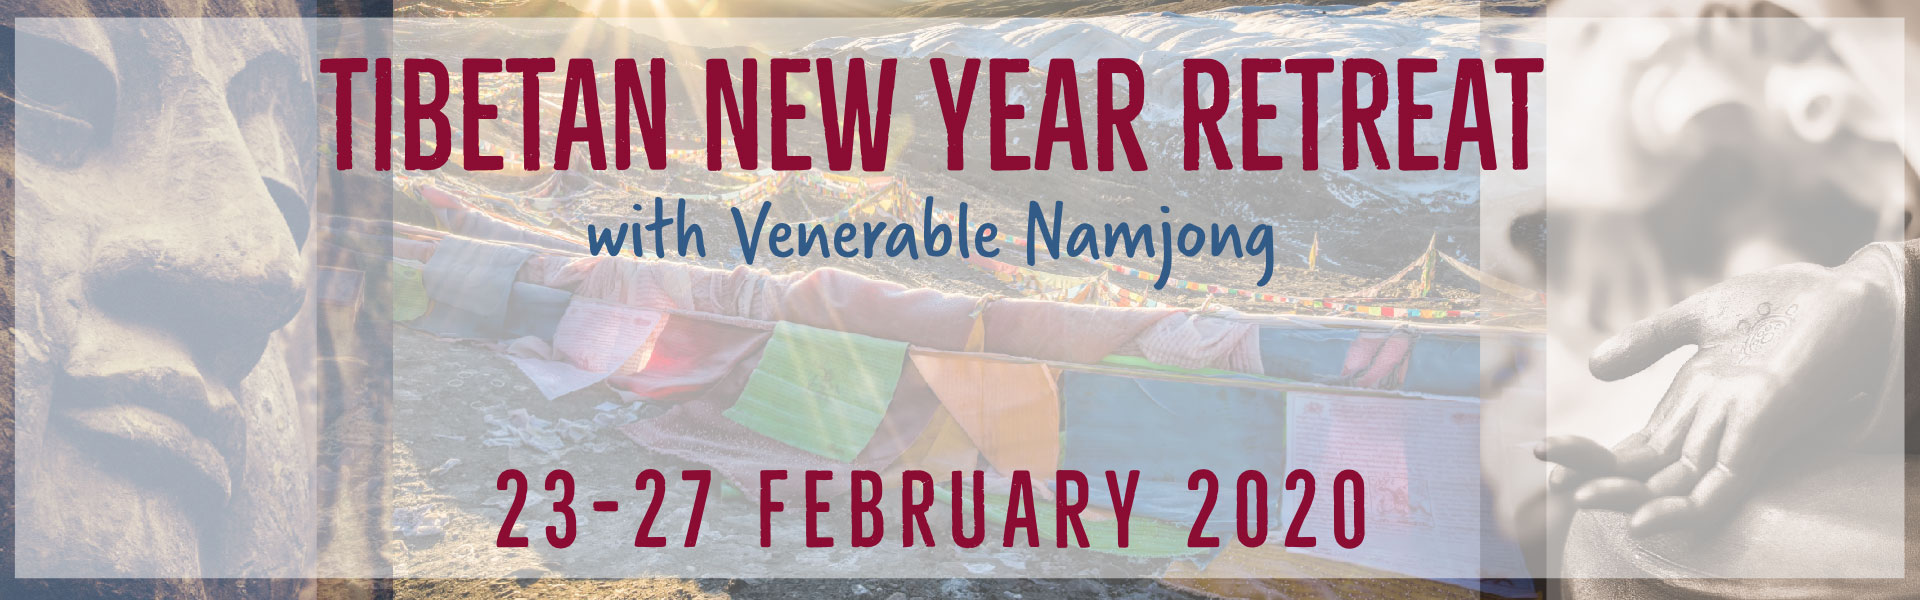 Tibetan New Year Retreat